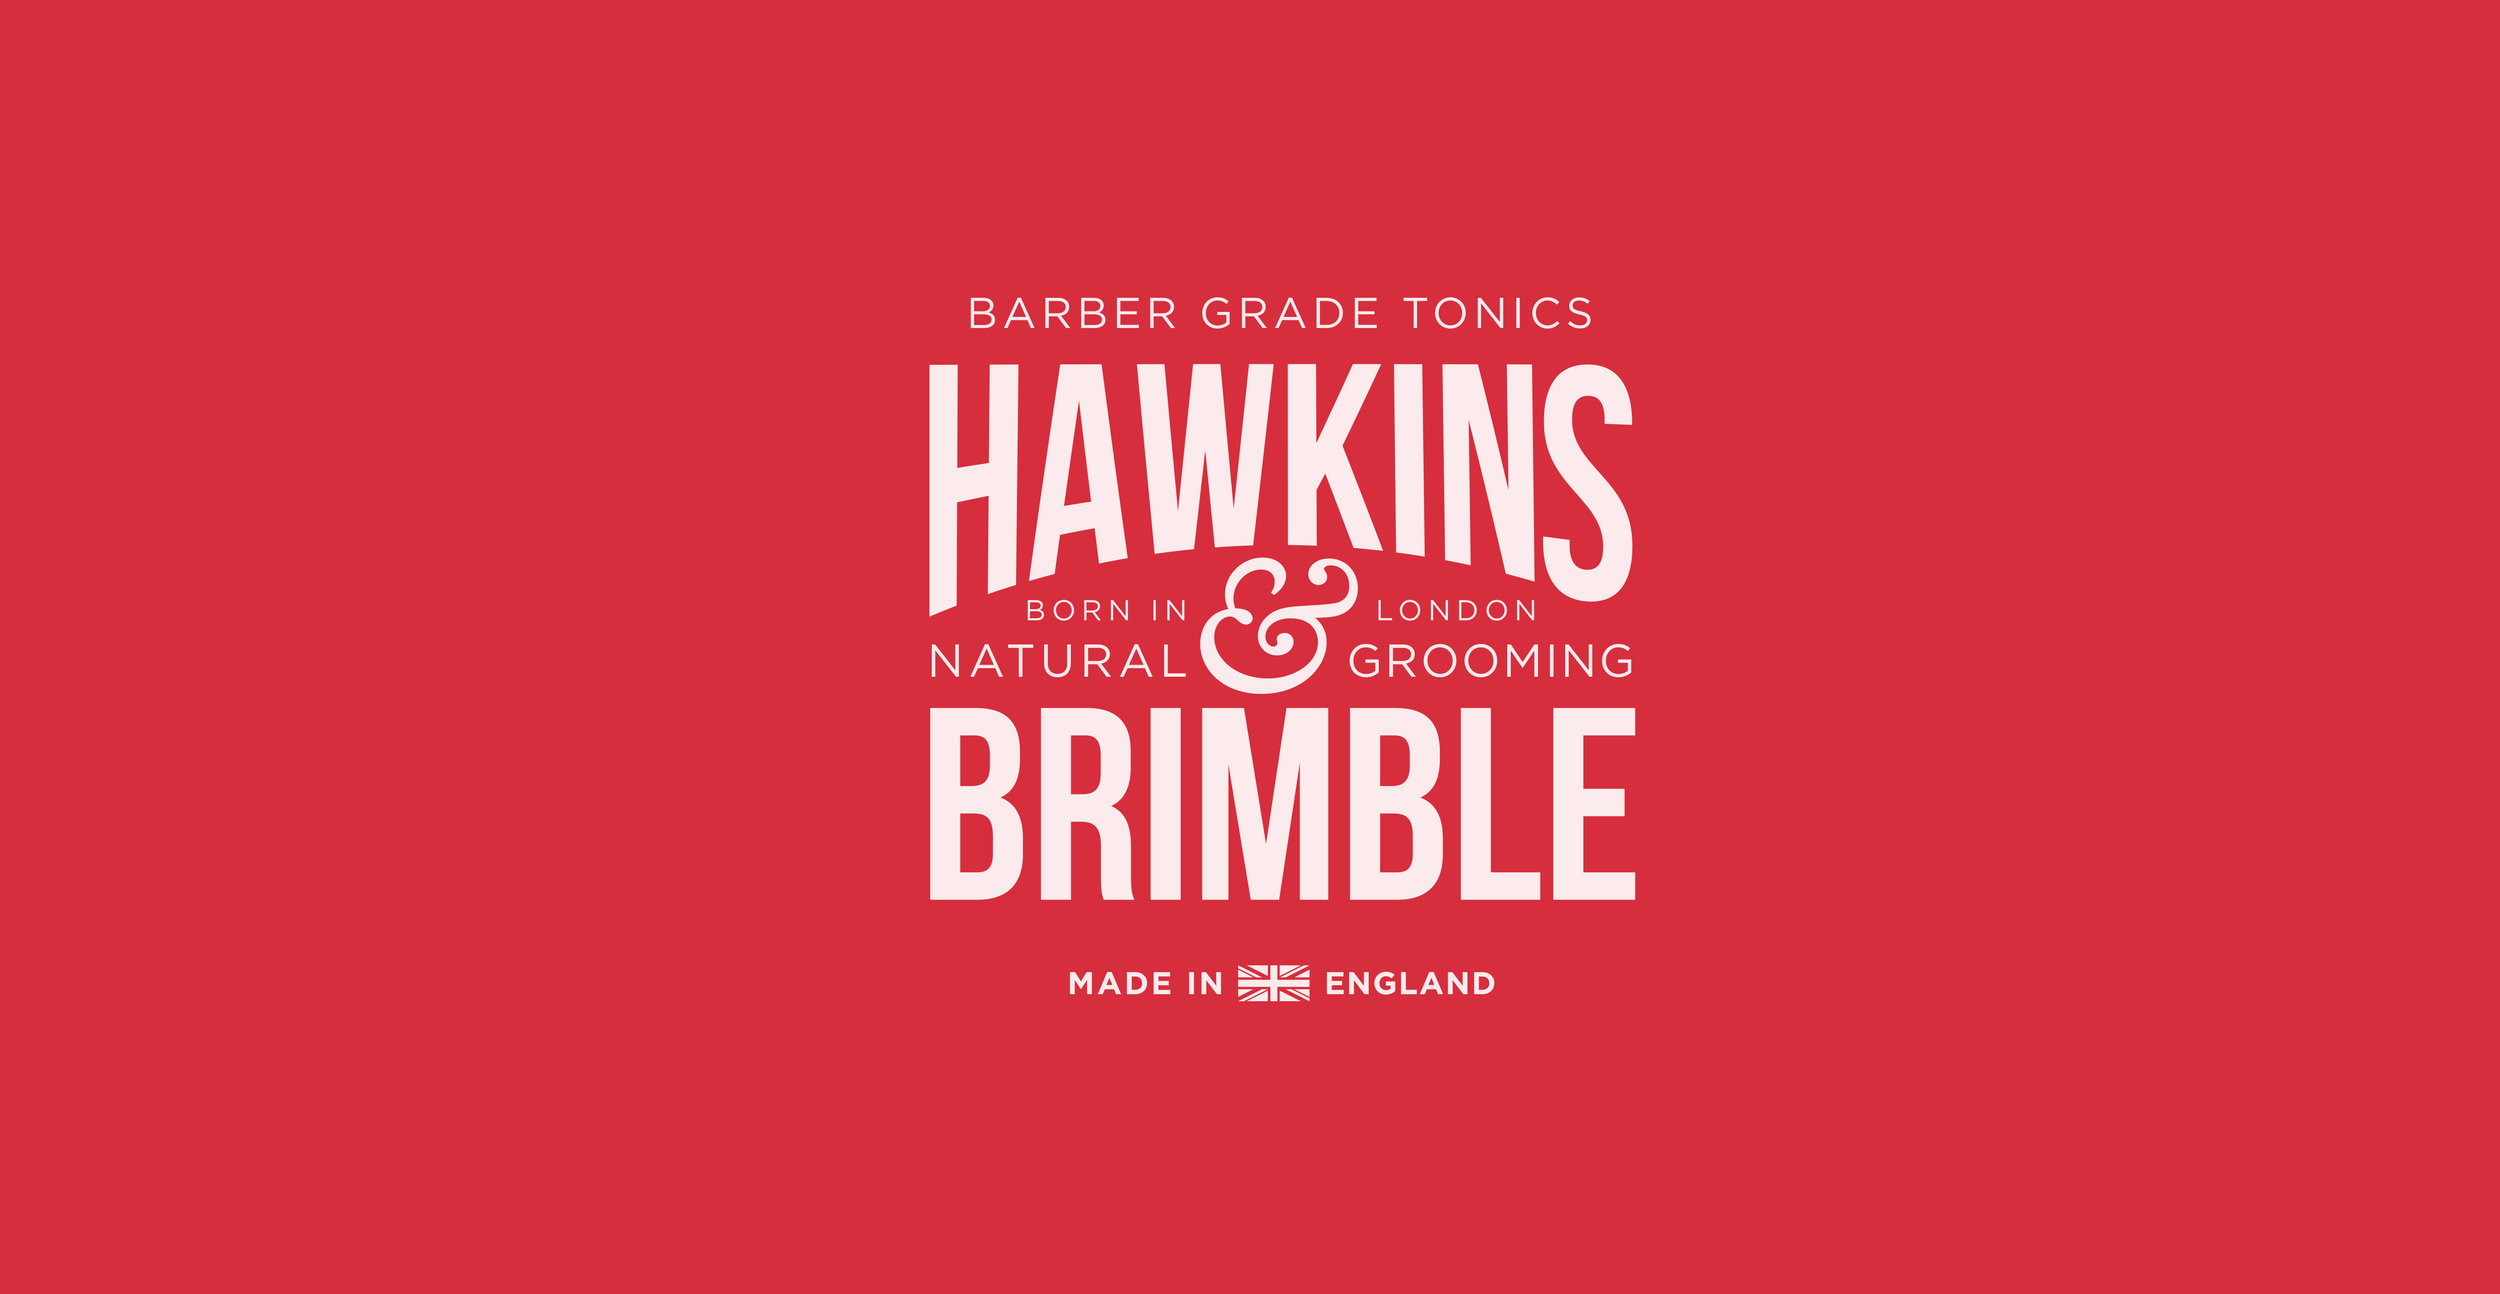 Launching a male grooming brand - Hawkins & Brimble Brand Identity